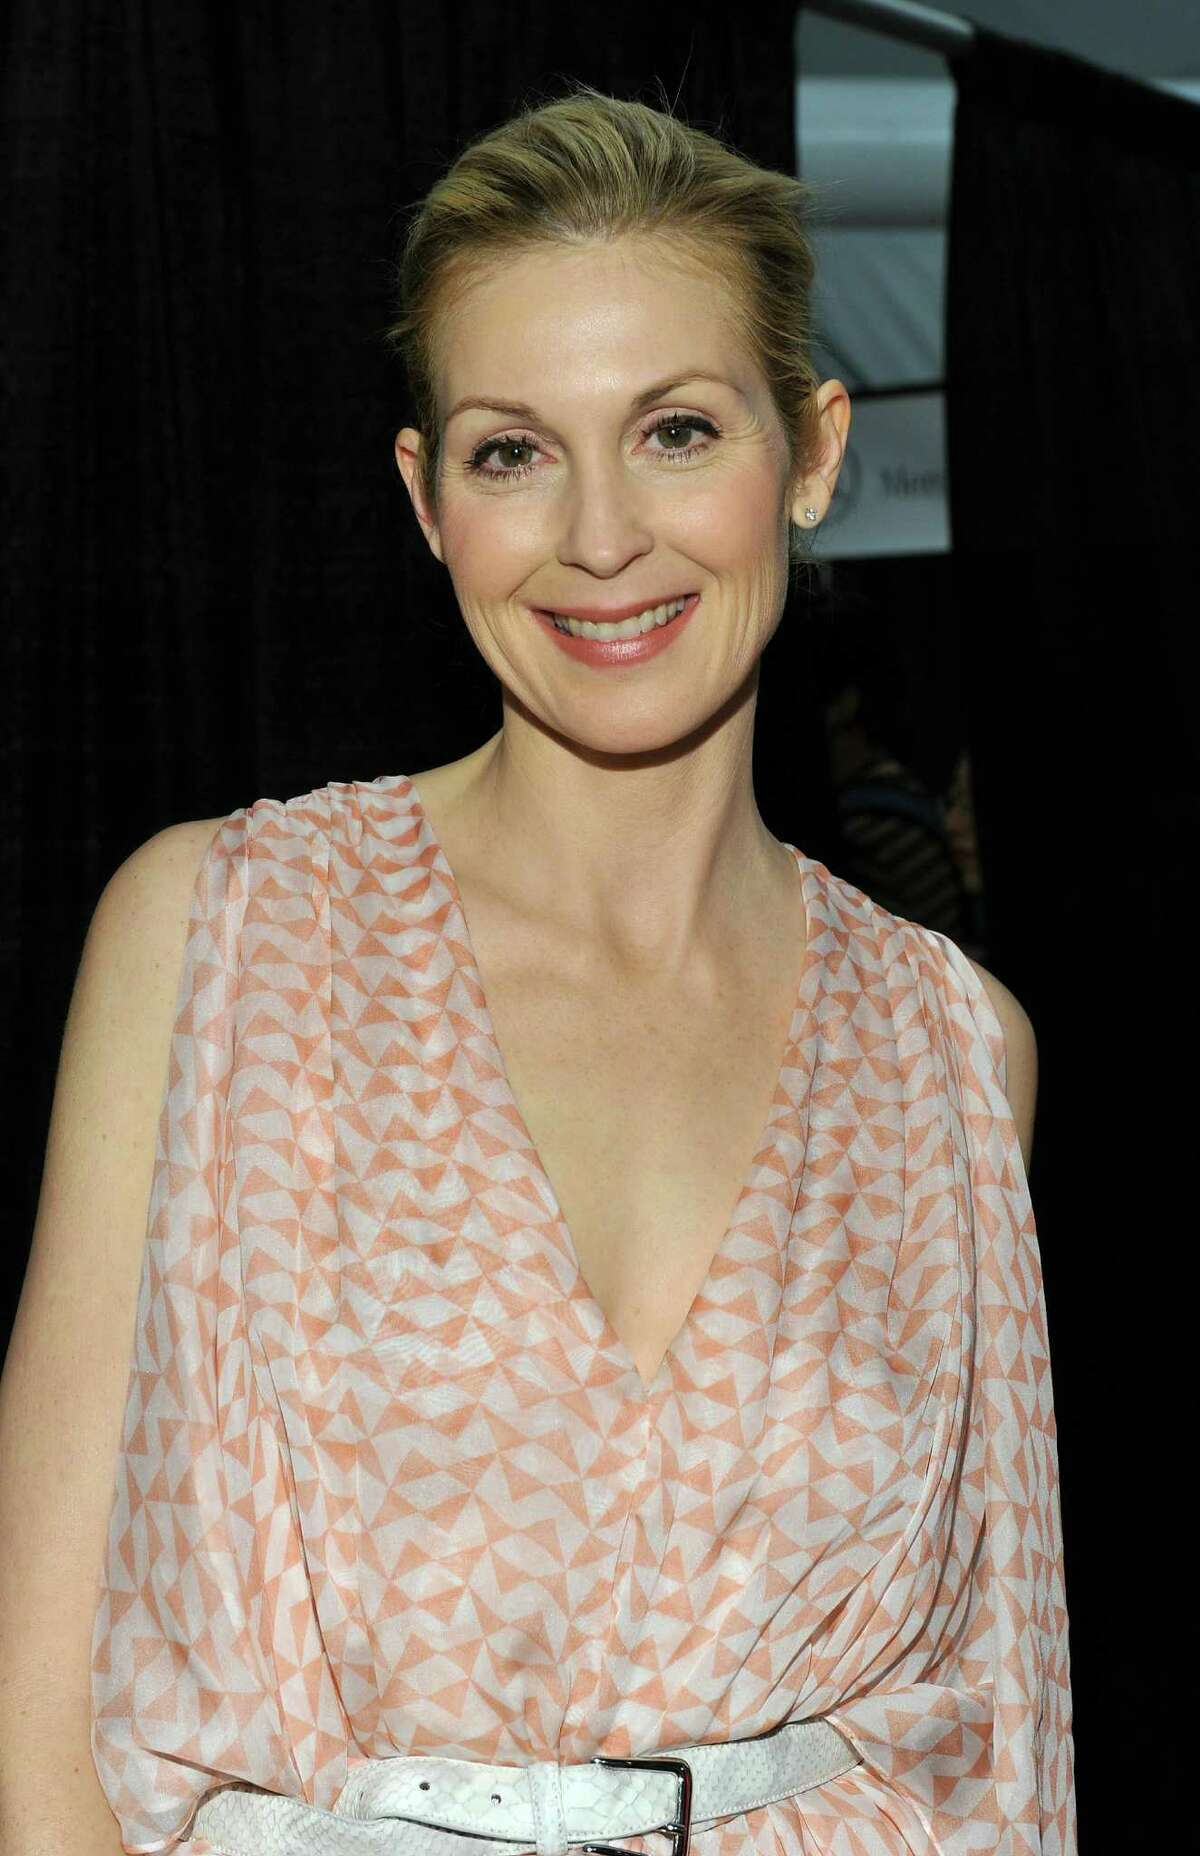 NEW YORK, NY - FEBRUARY 15: Actress Kelly Rutherford poses backstage at the Dennis Basso Fall 2011 fashion show during Mercedes-Benz Fashion Week at The Stage at Lincoln Center on February 15, 2011 in New York City.